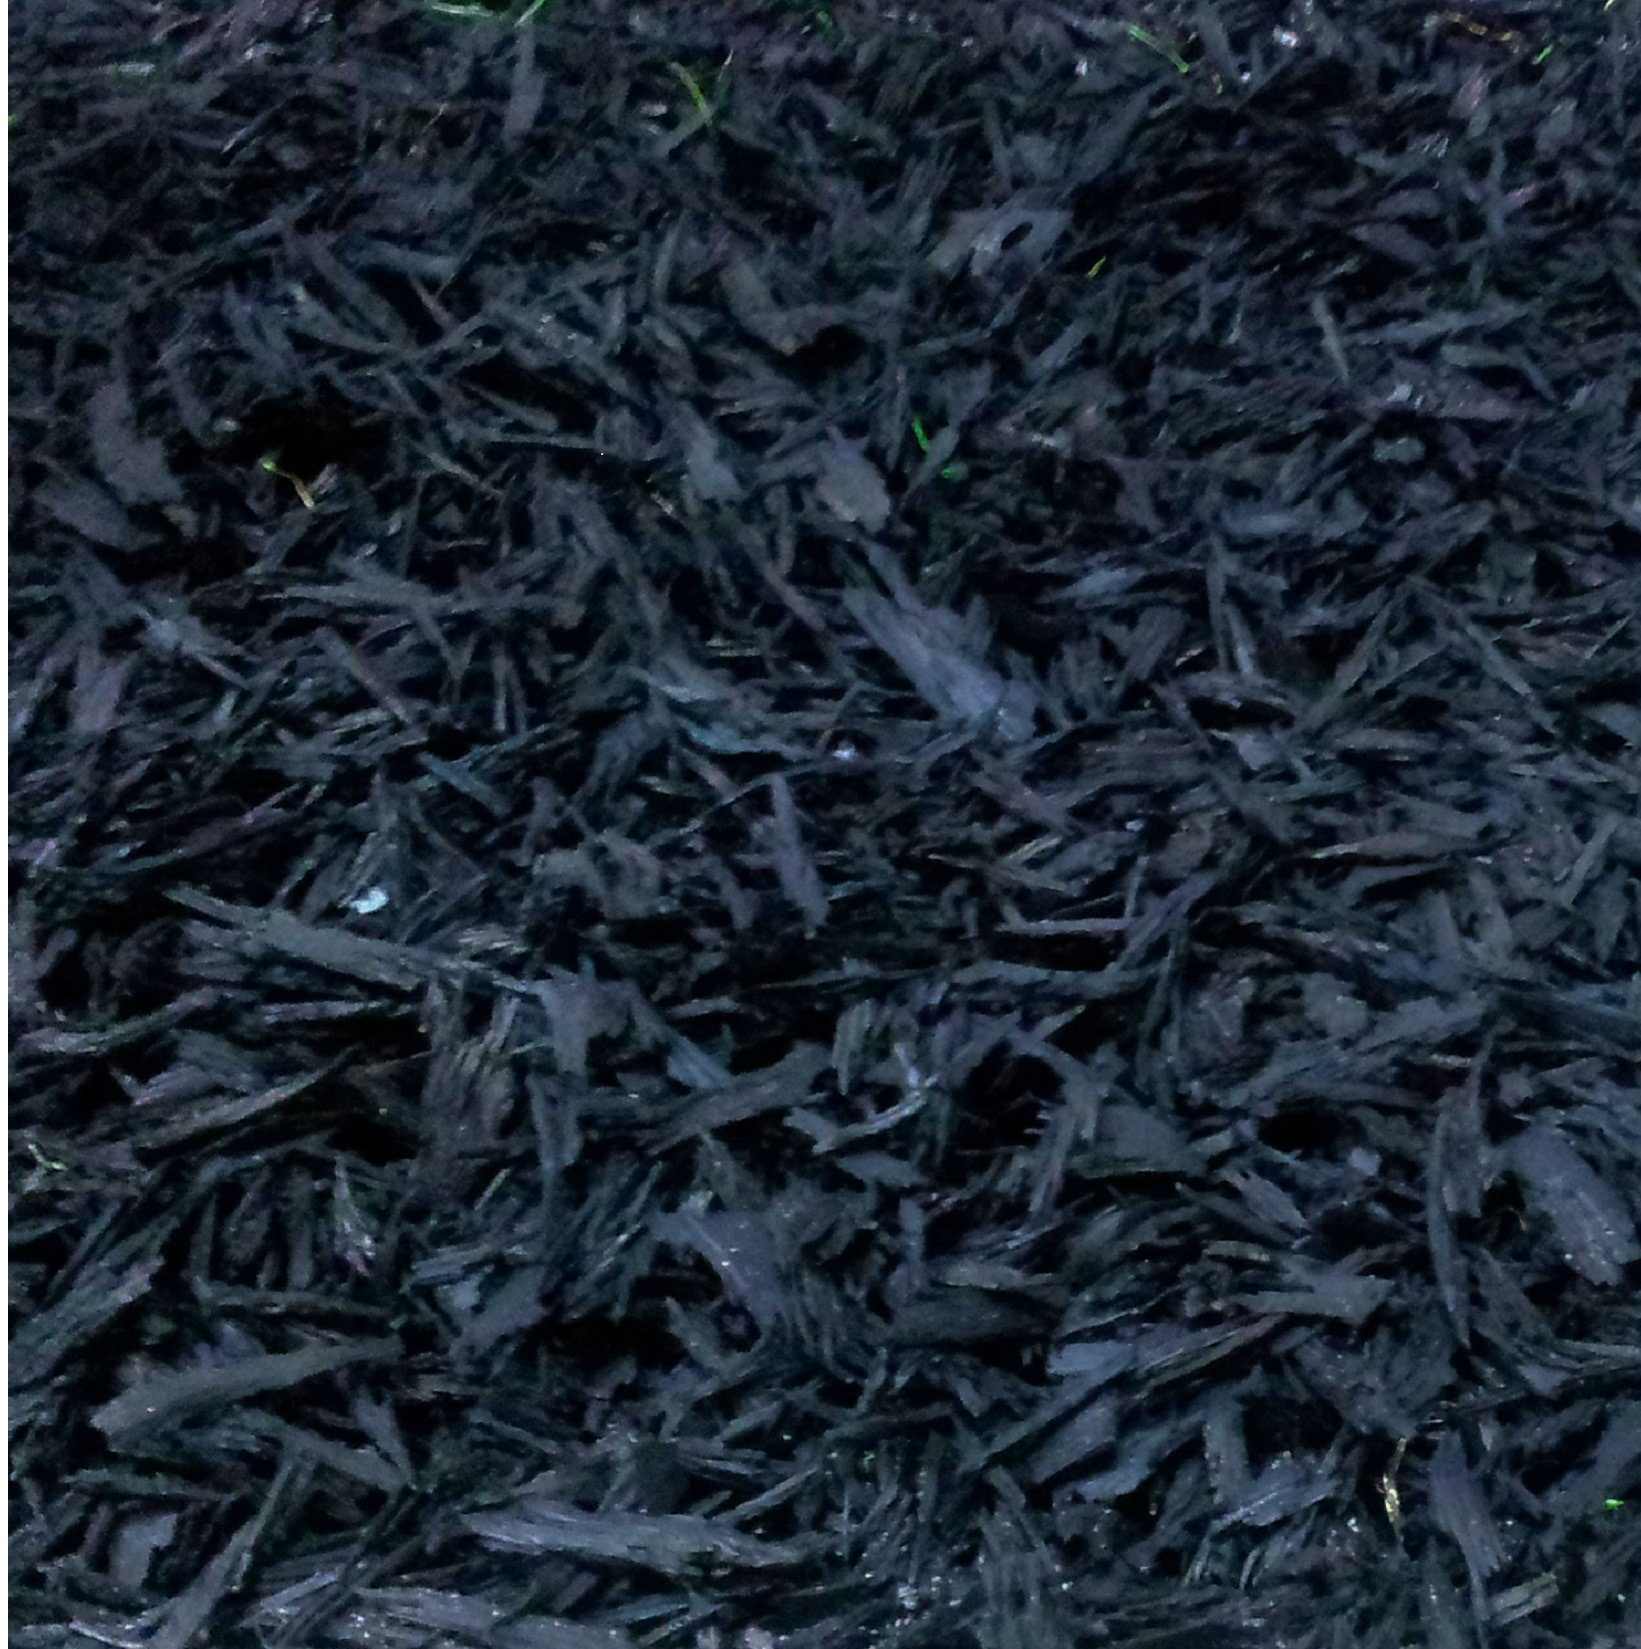 LOOKS LIKE THE REAL MULCH BUT ONCE ONLY